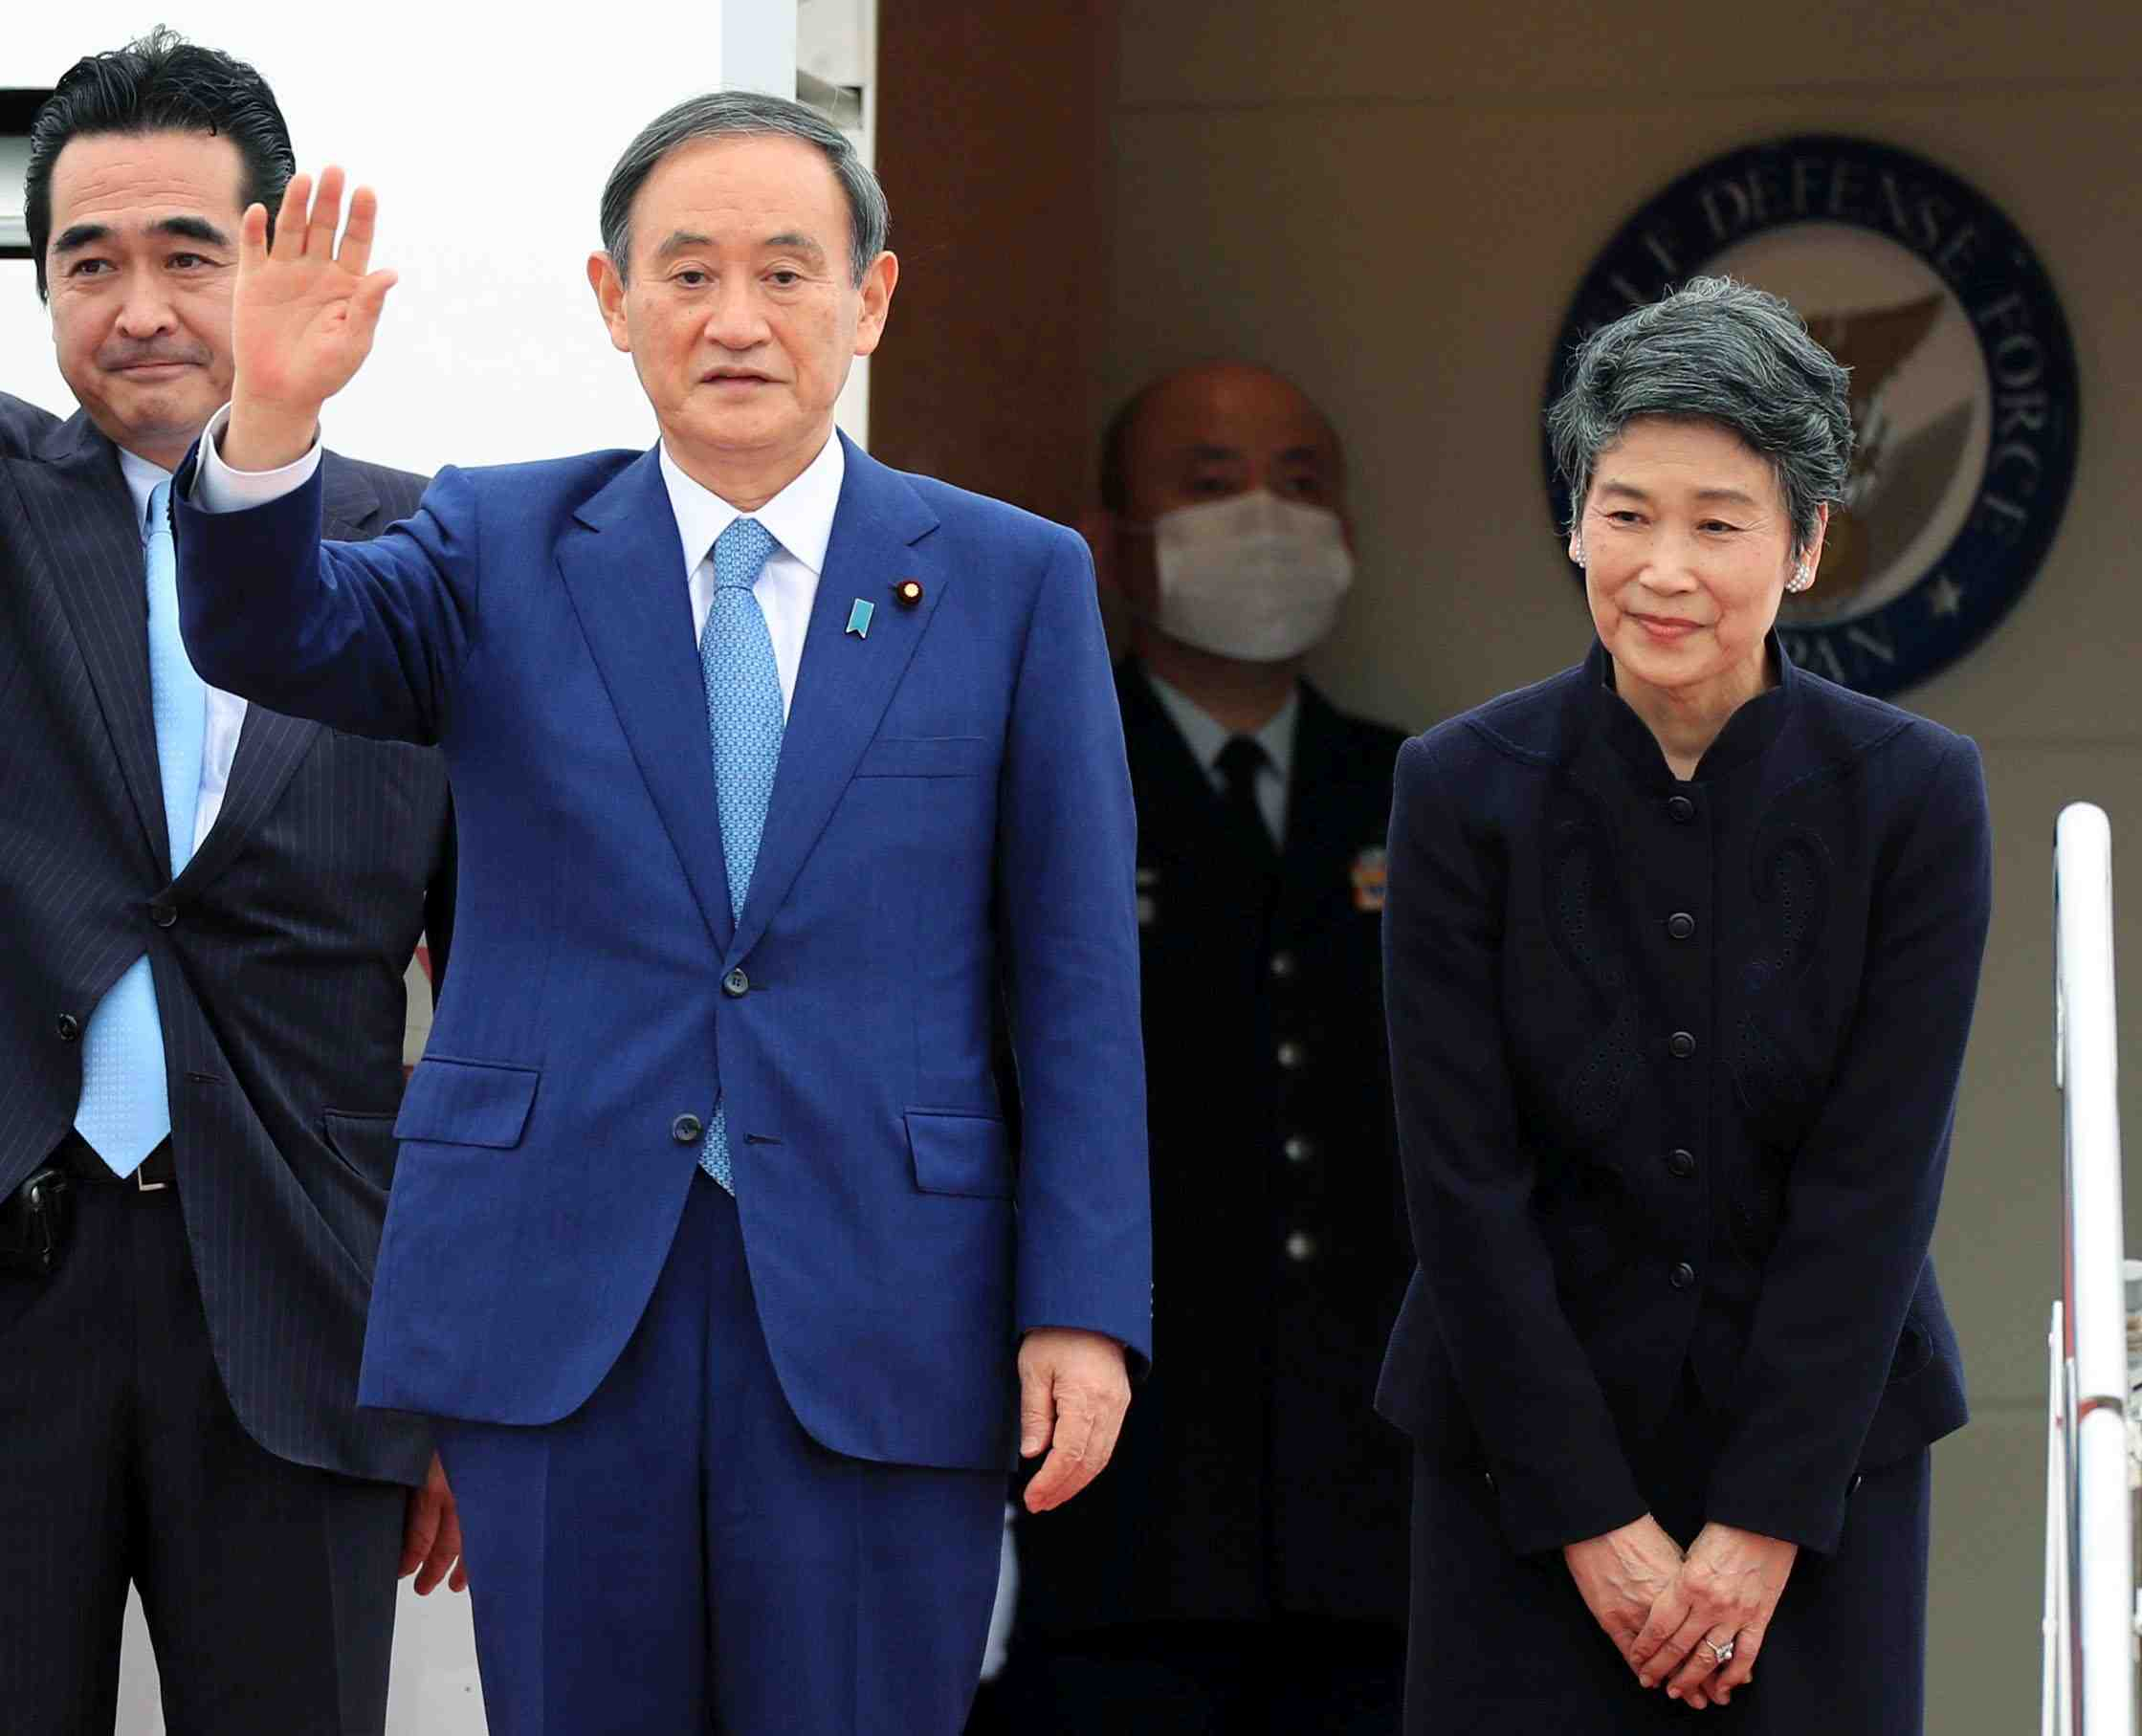 Prime Minister Yoshihide Suga's Trip to South East Asia 006